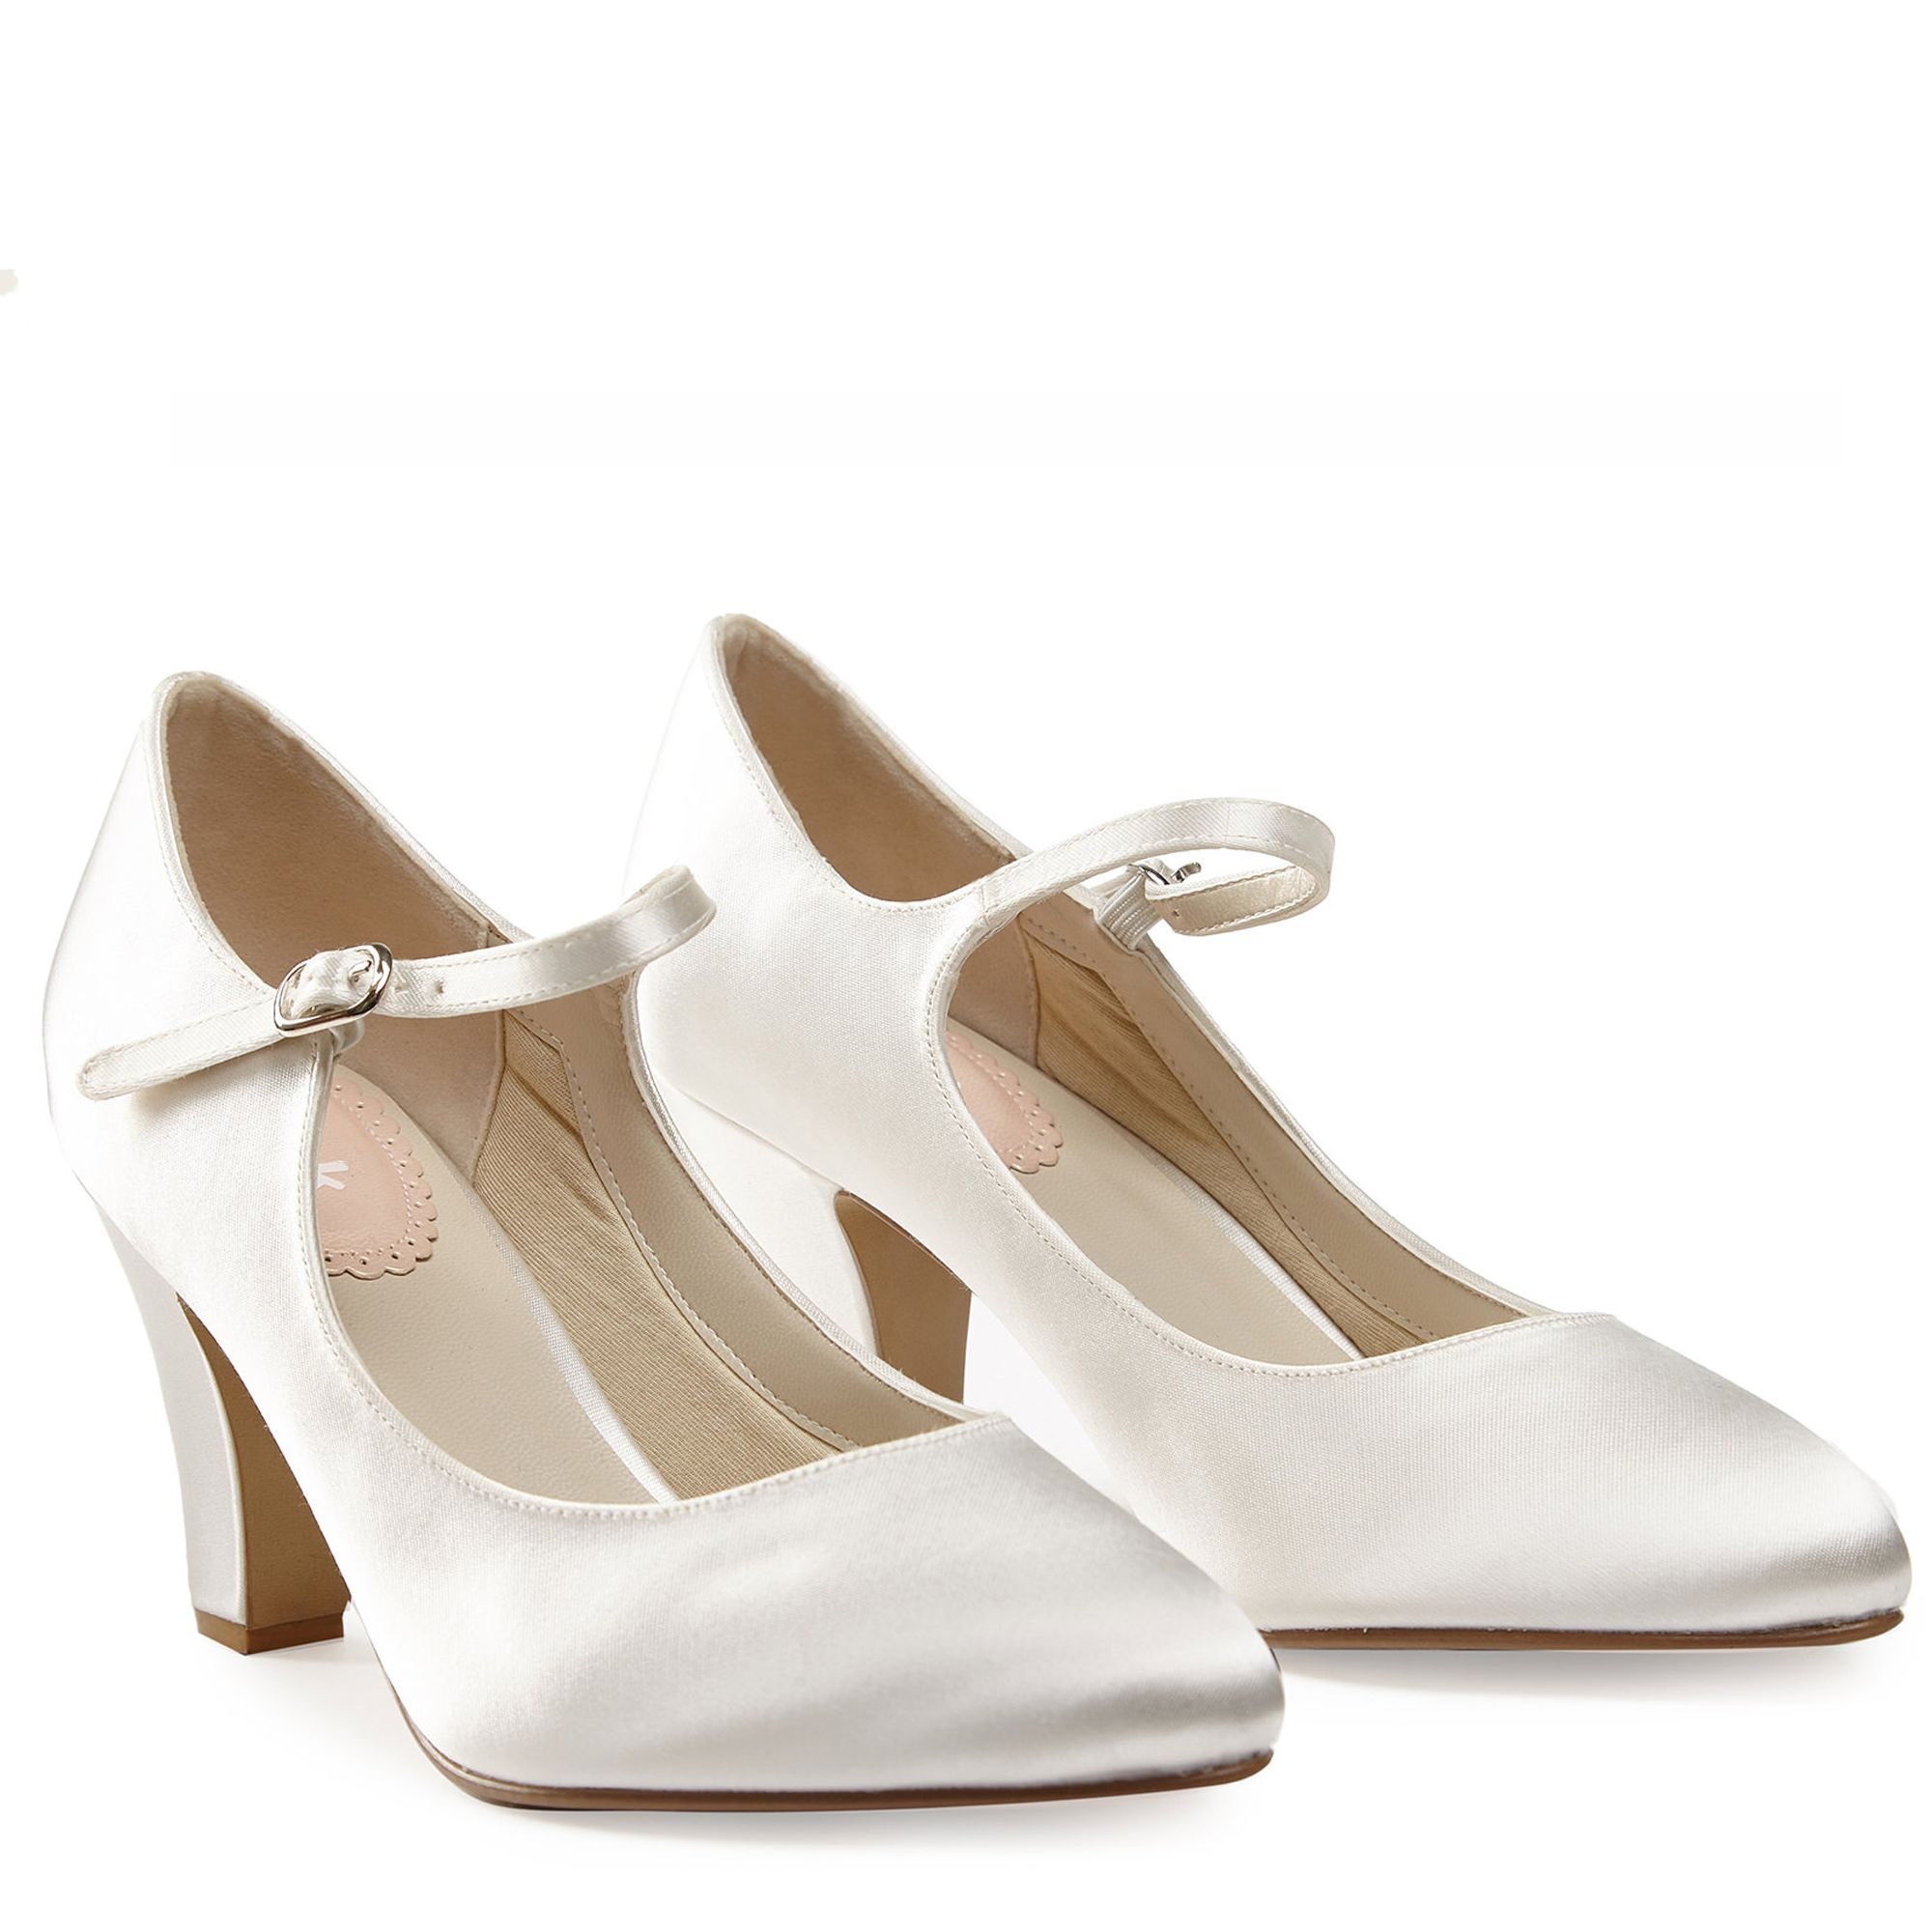 1920s Style Shoes Radiance Ivory - Size 42 £69.00 AT vintagedancer.com